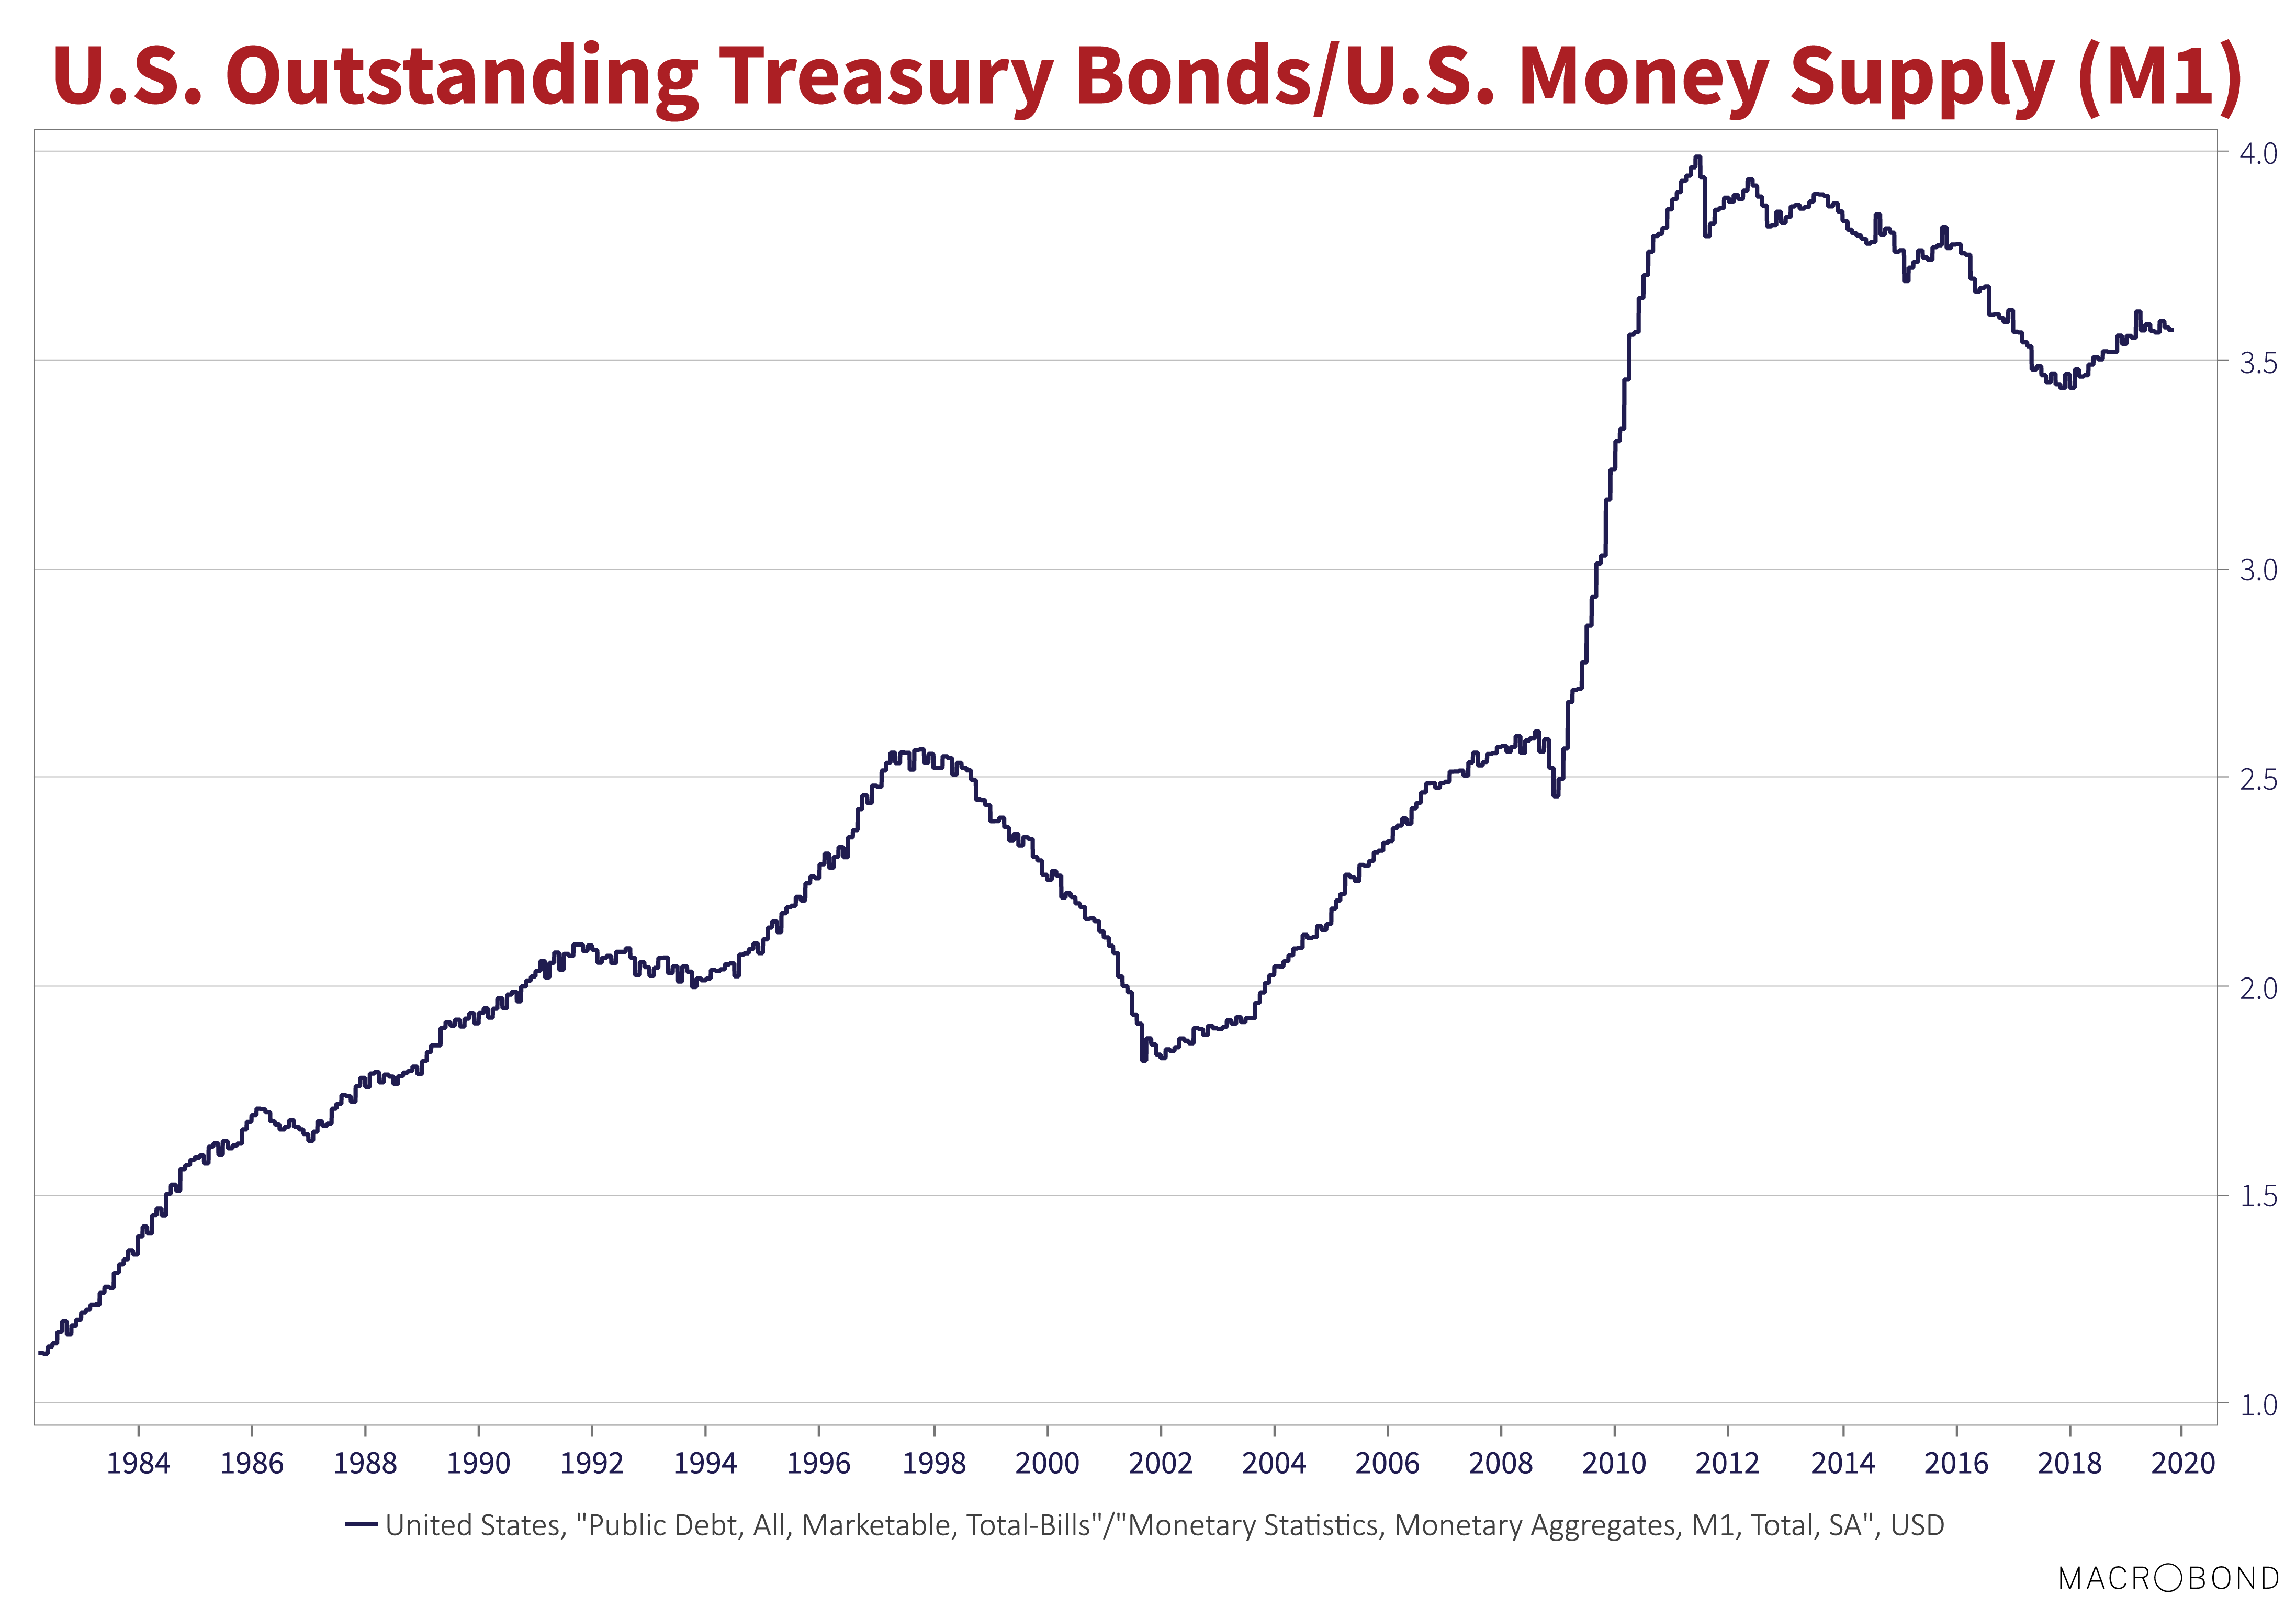 """U.S Outstanding Treasury Bonds/U.S Money Supply (M1). Source: Macrobond. Line graph shows values from 1984 to 2020. Line is: United States, """"Public debt, all, marketable, total bills""""/Monetary statistics, monetary aggregates, M1, total, SA"""", USD. Line trends upwards"""